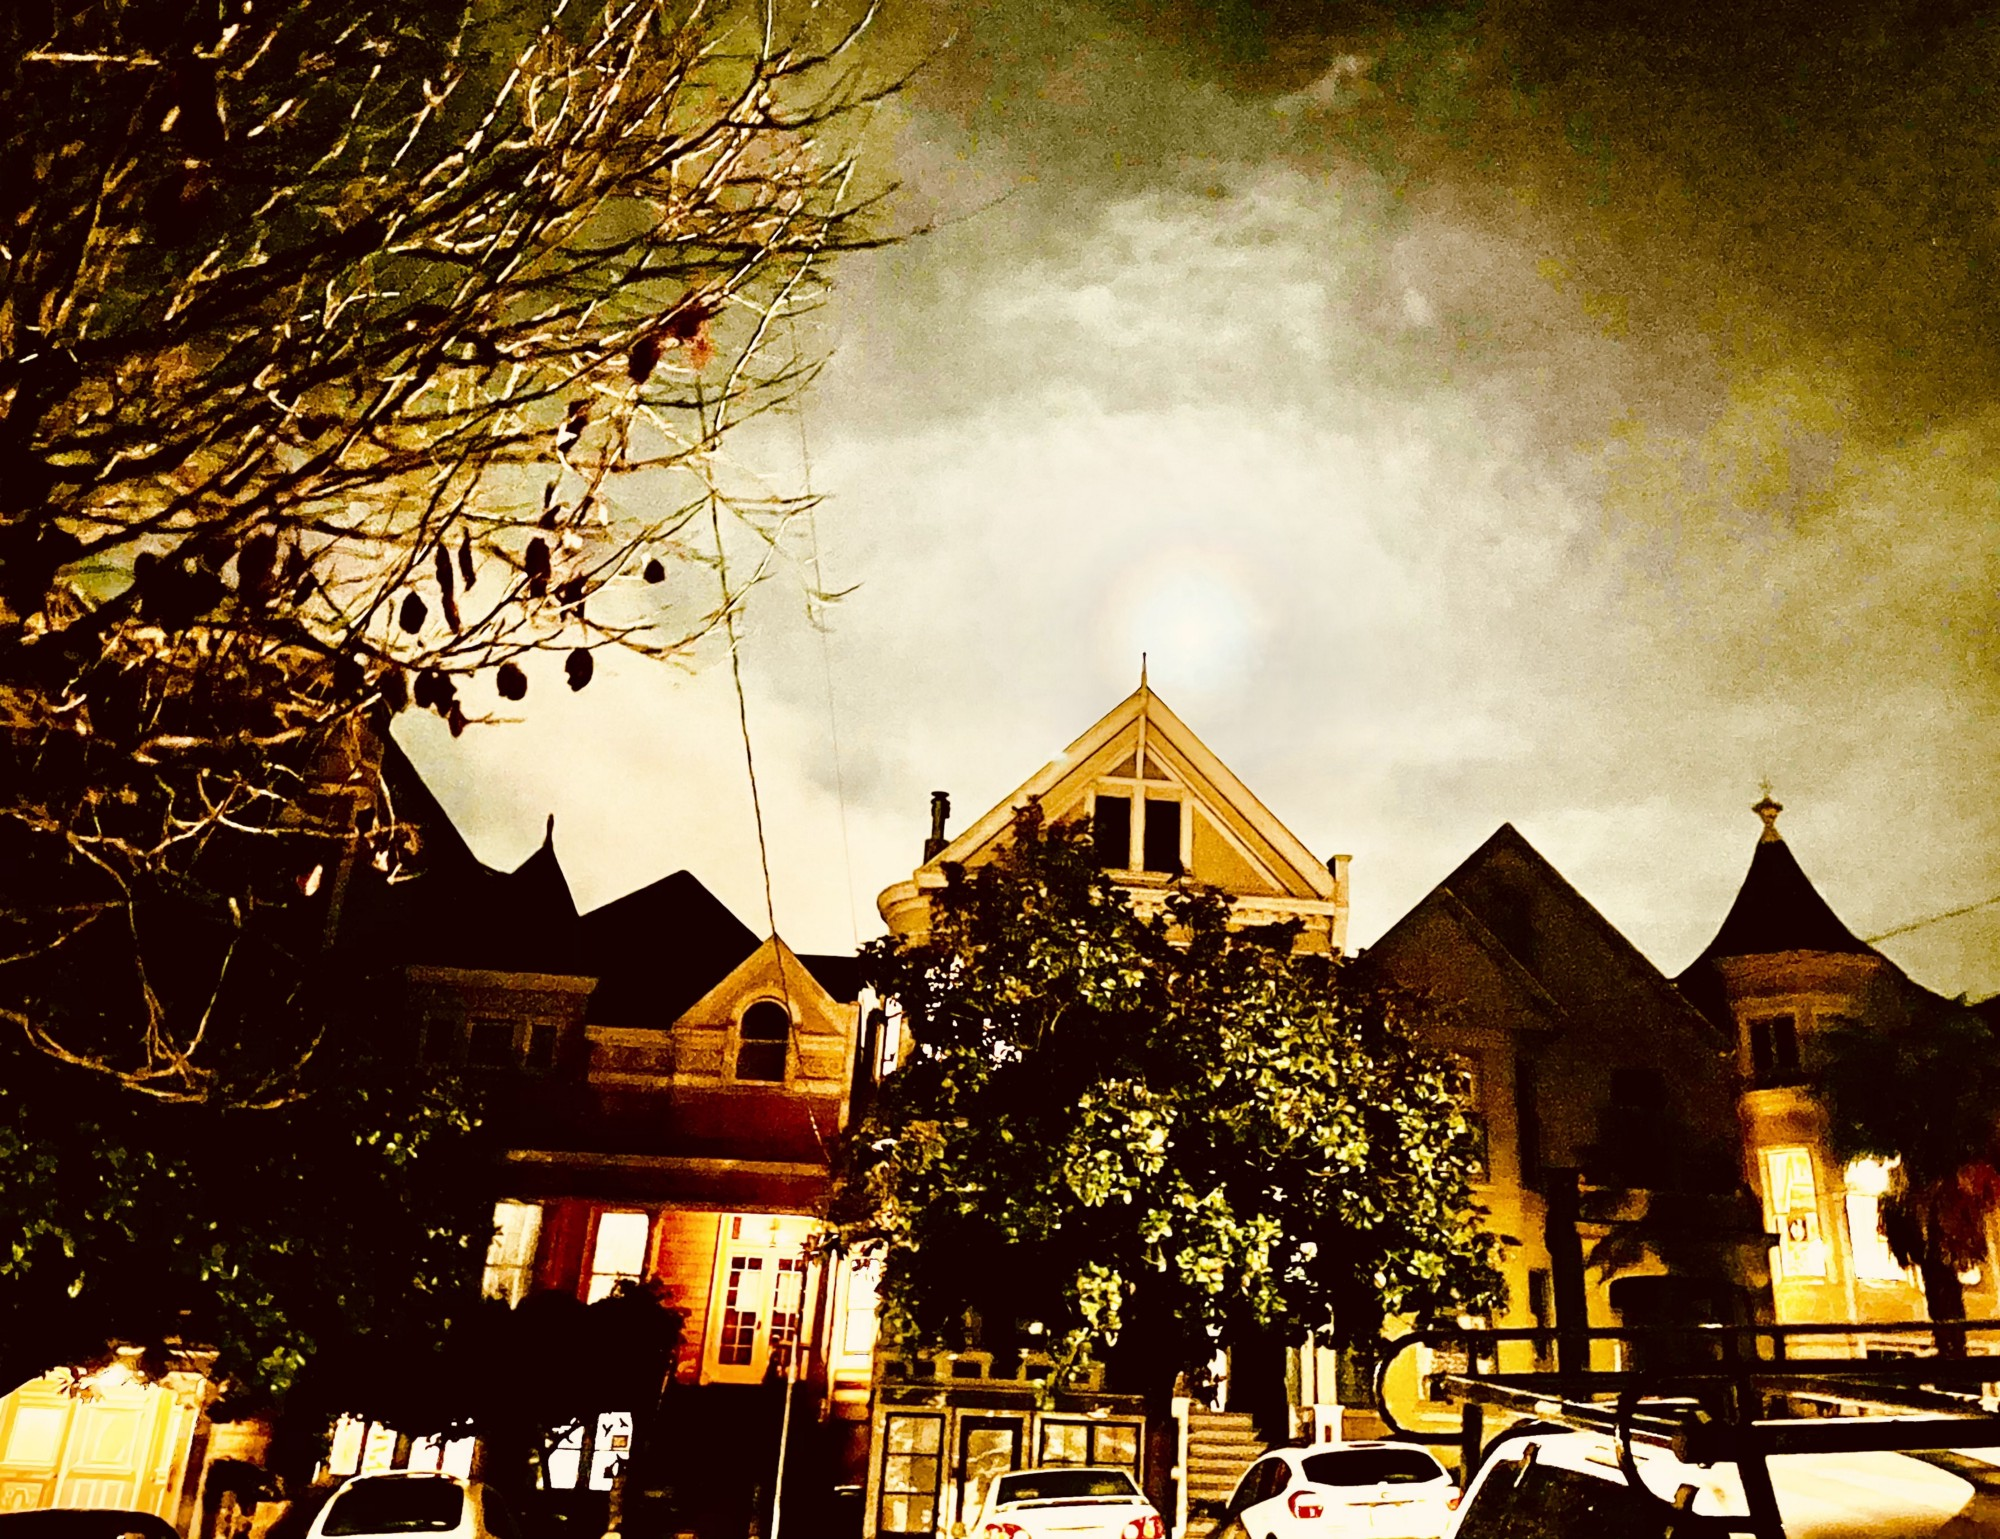 Four San Francisco Victorians act as sentinels by the light of a full moon surrounded by clouds full of foreboding.